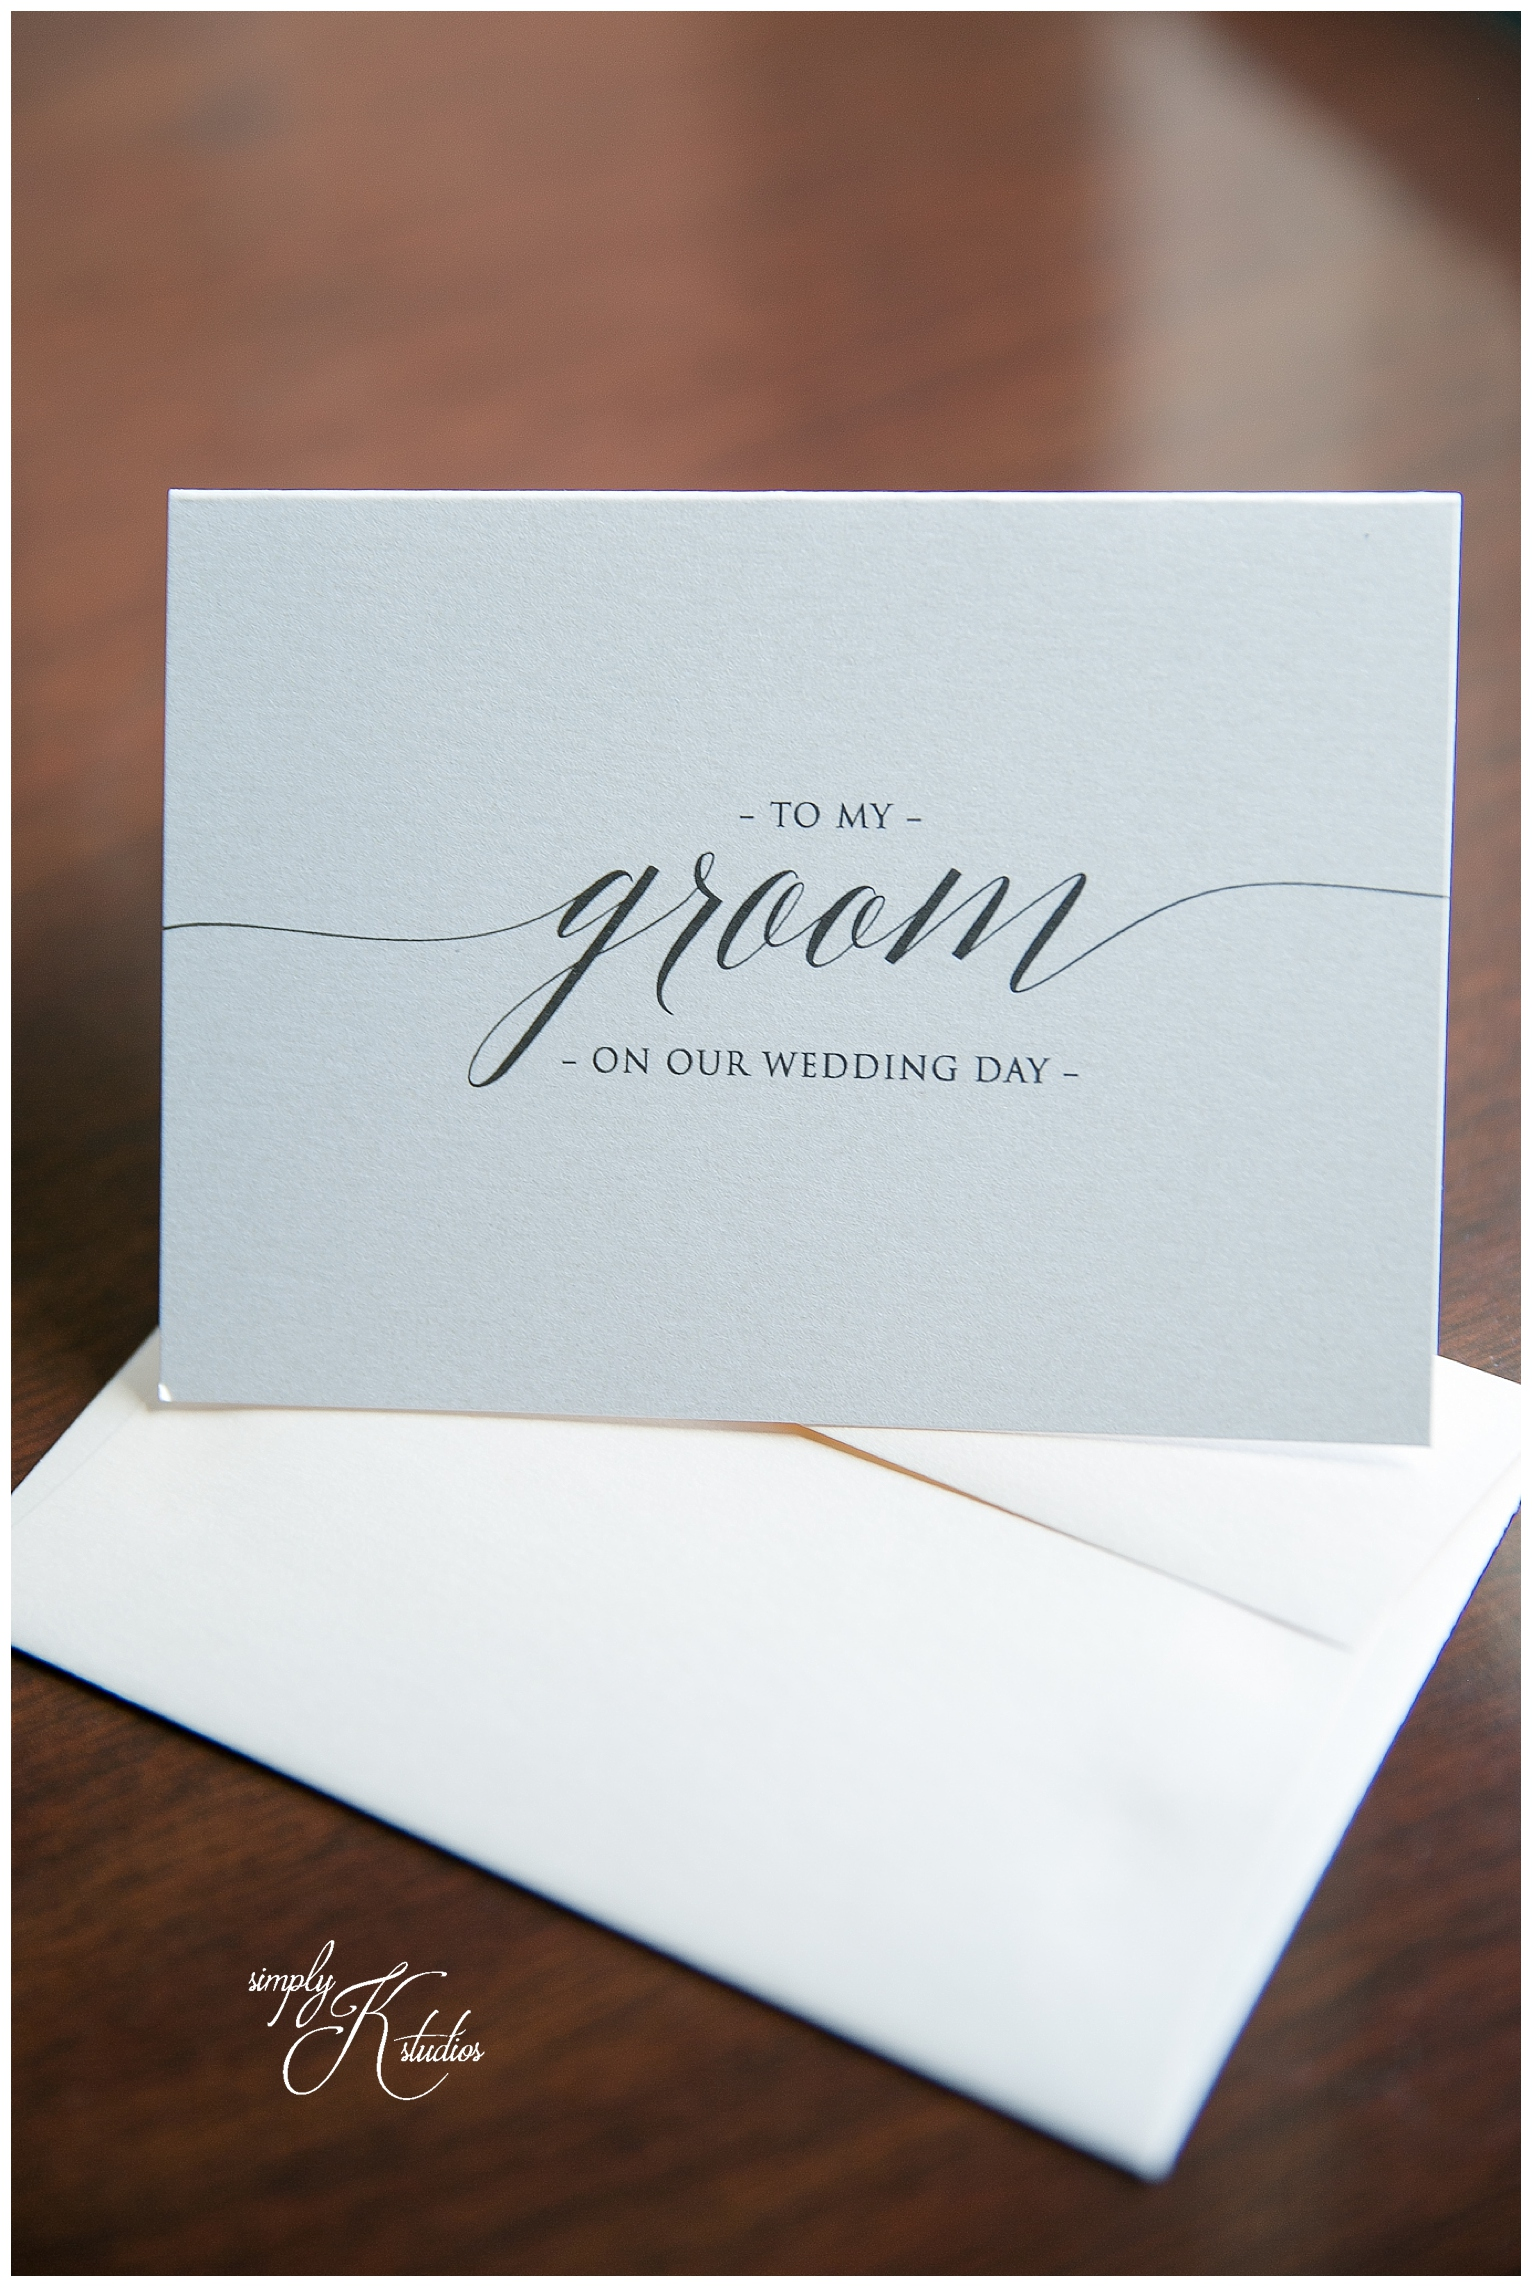 Wedding Cards.jpg